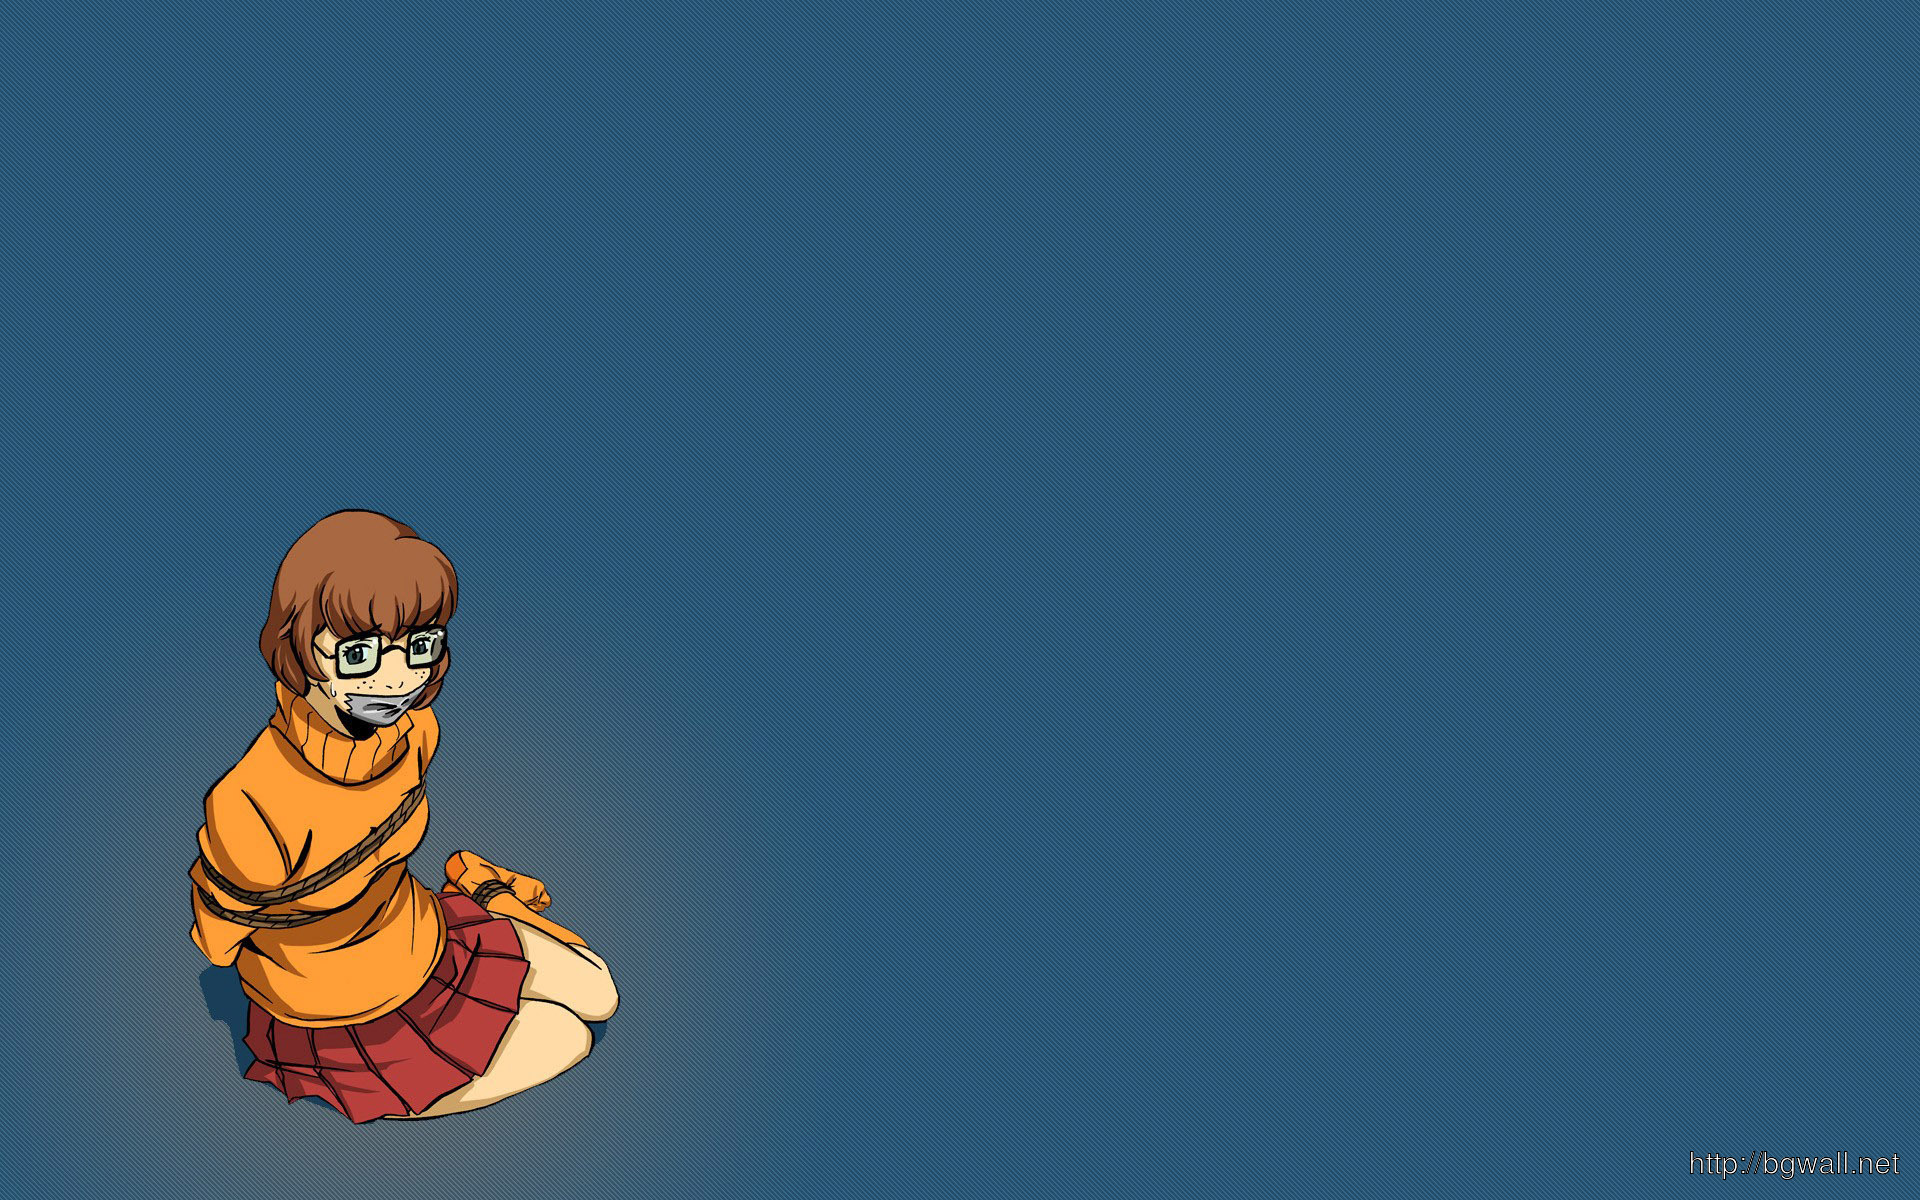 Velma-Scooby-Doo-Free-Wallpaper